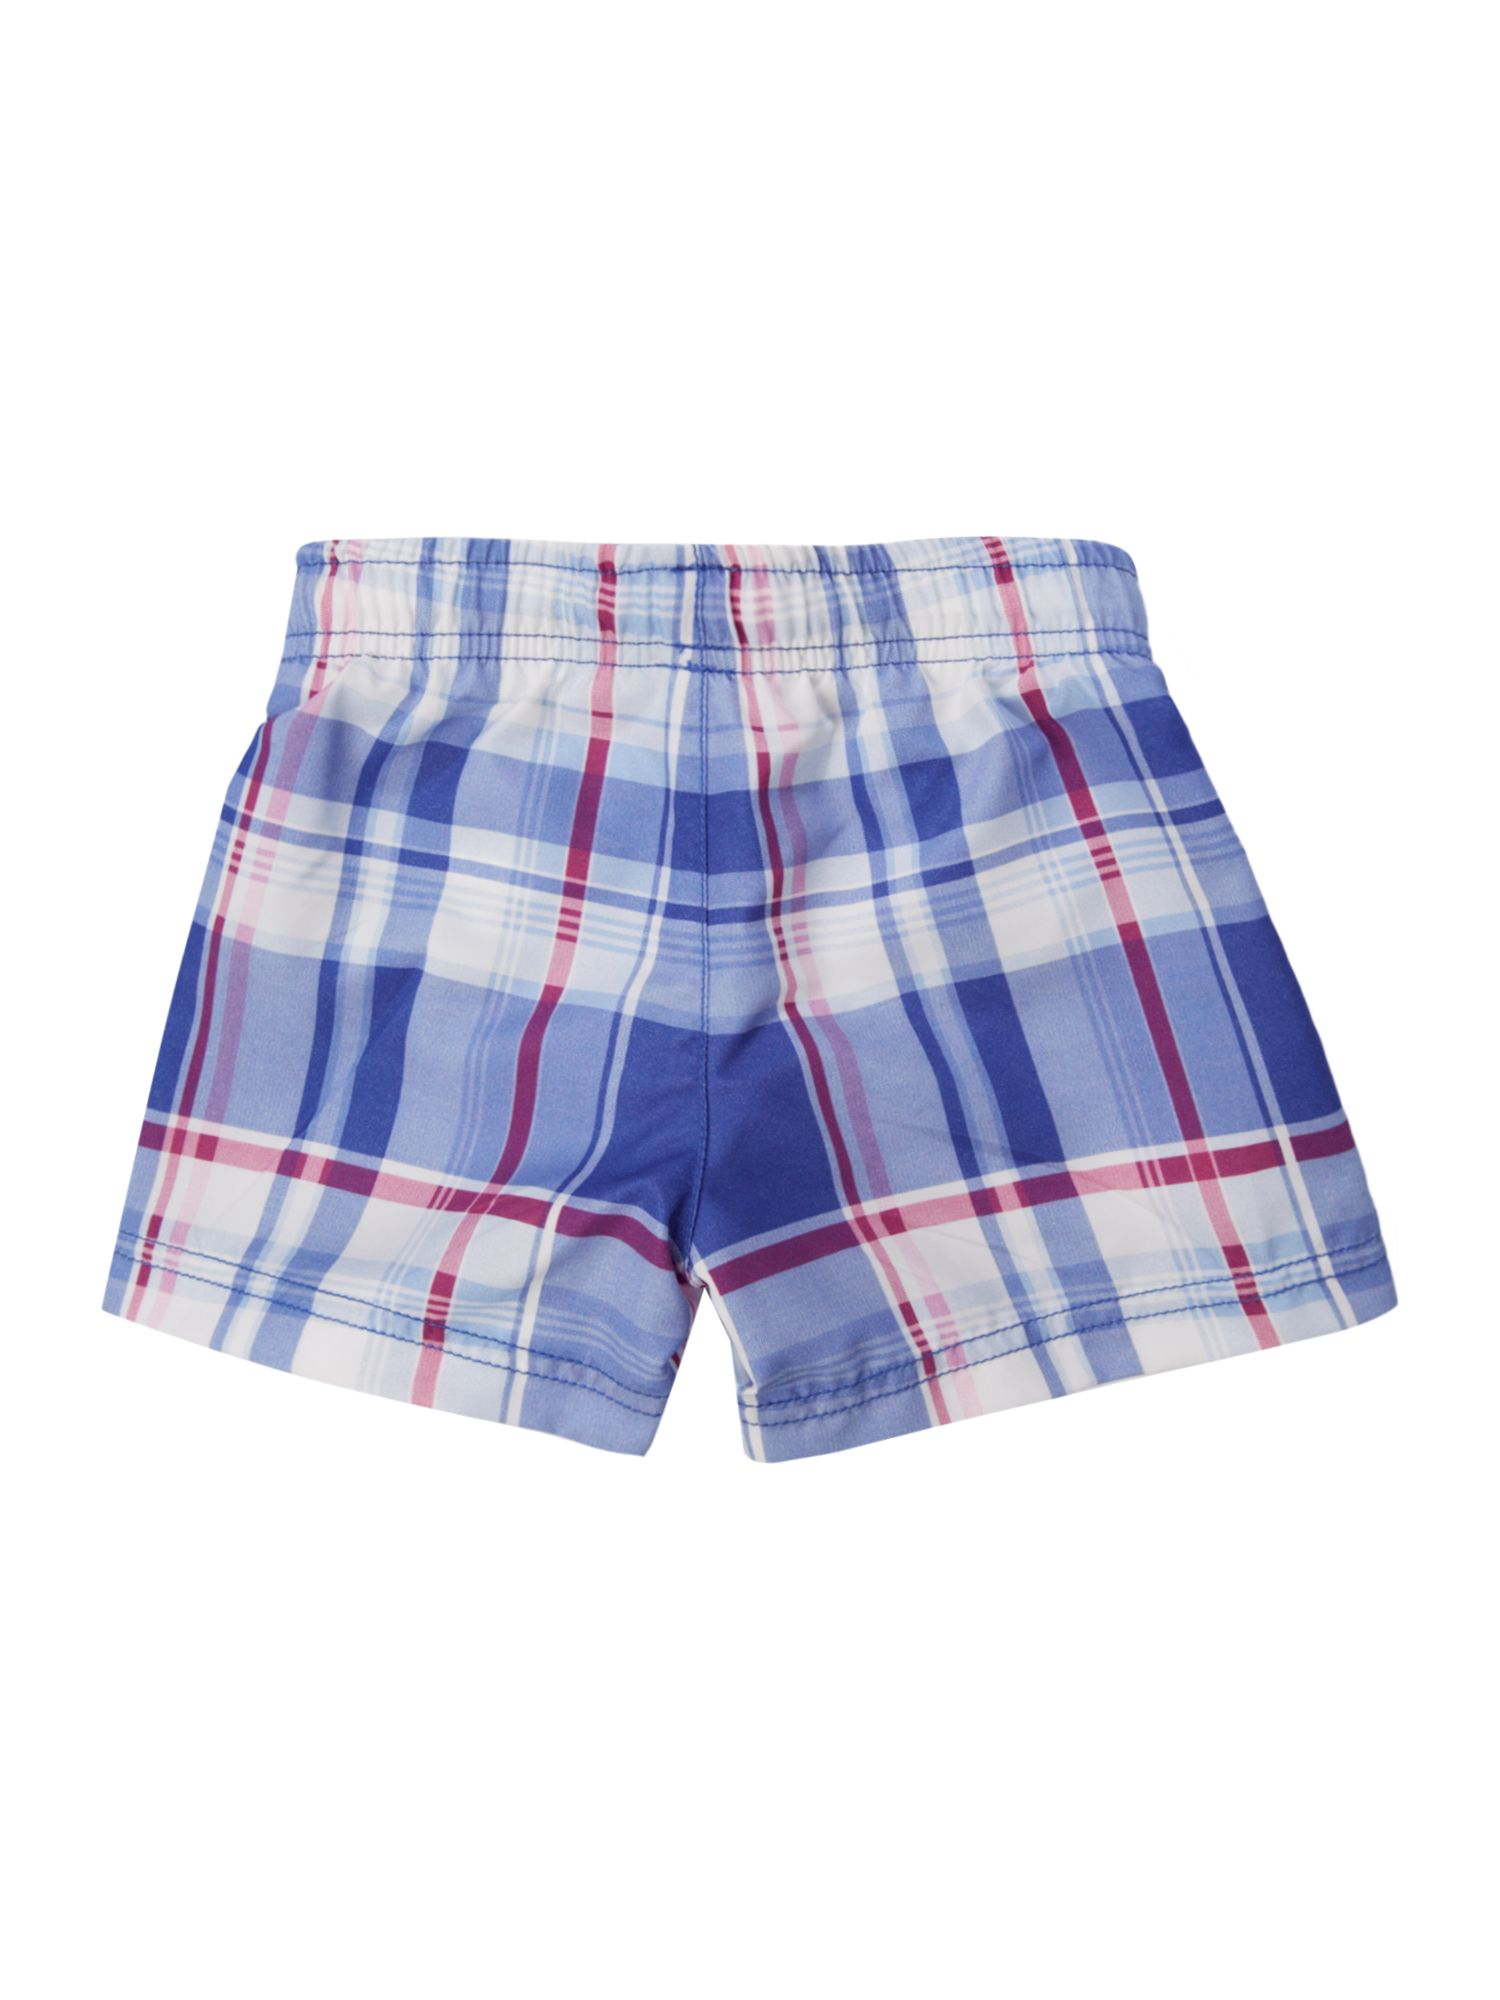 Boys check swim shorts